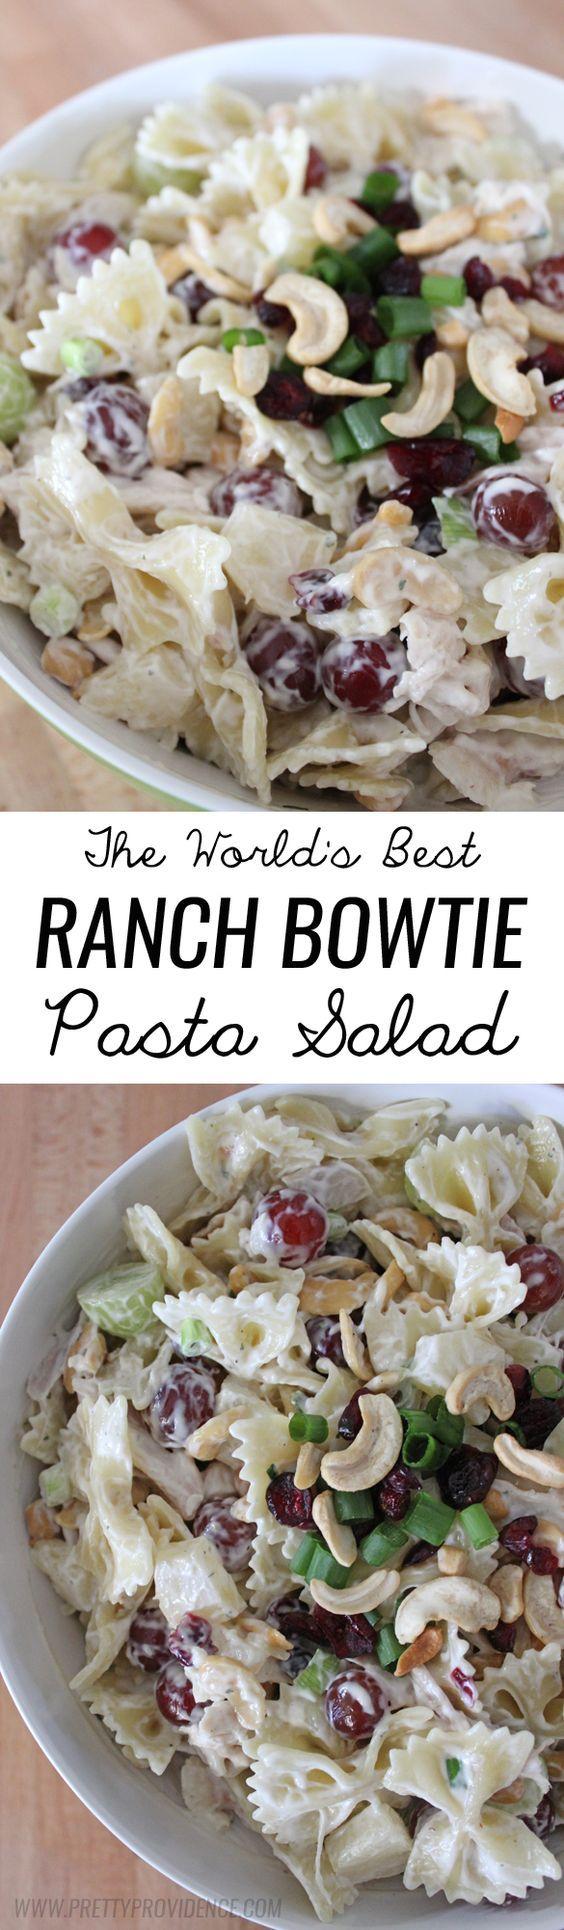 Literally my FAVORITE EVER pasta salad! It is the perfect blend of sweet and salty and I've never mt anyone who didn't love it!: